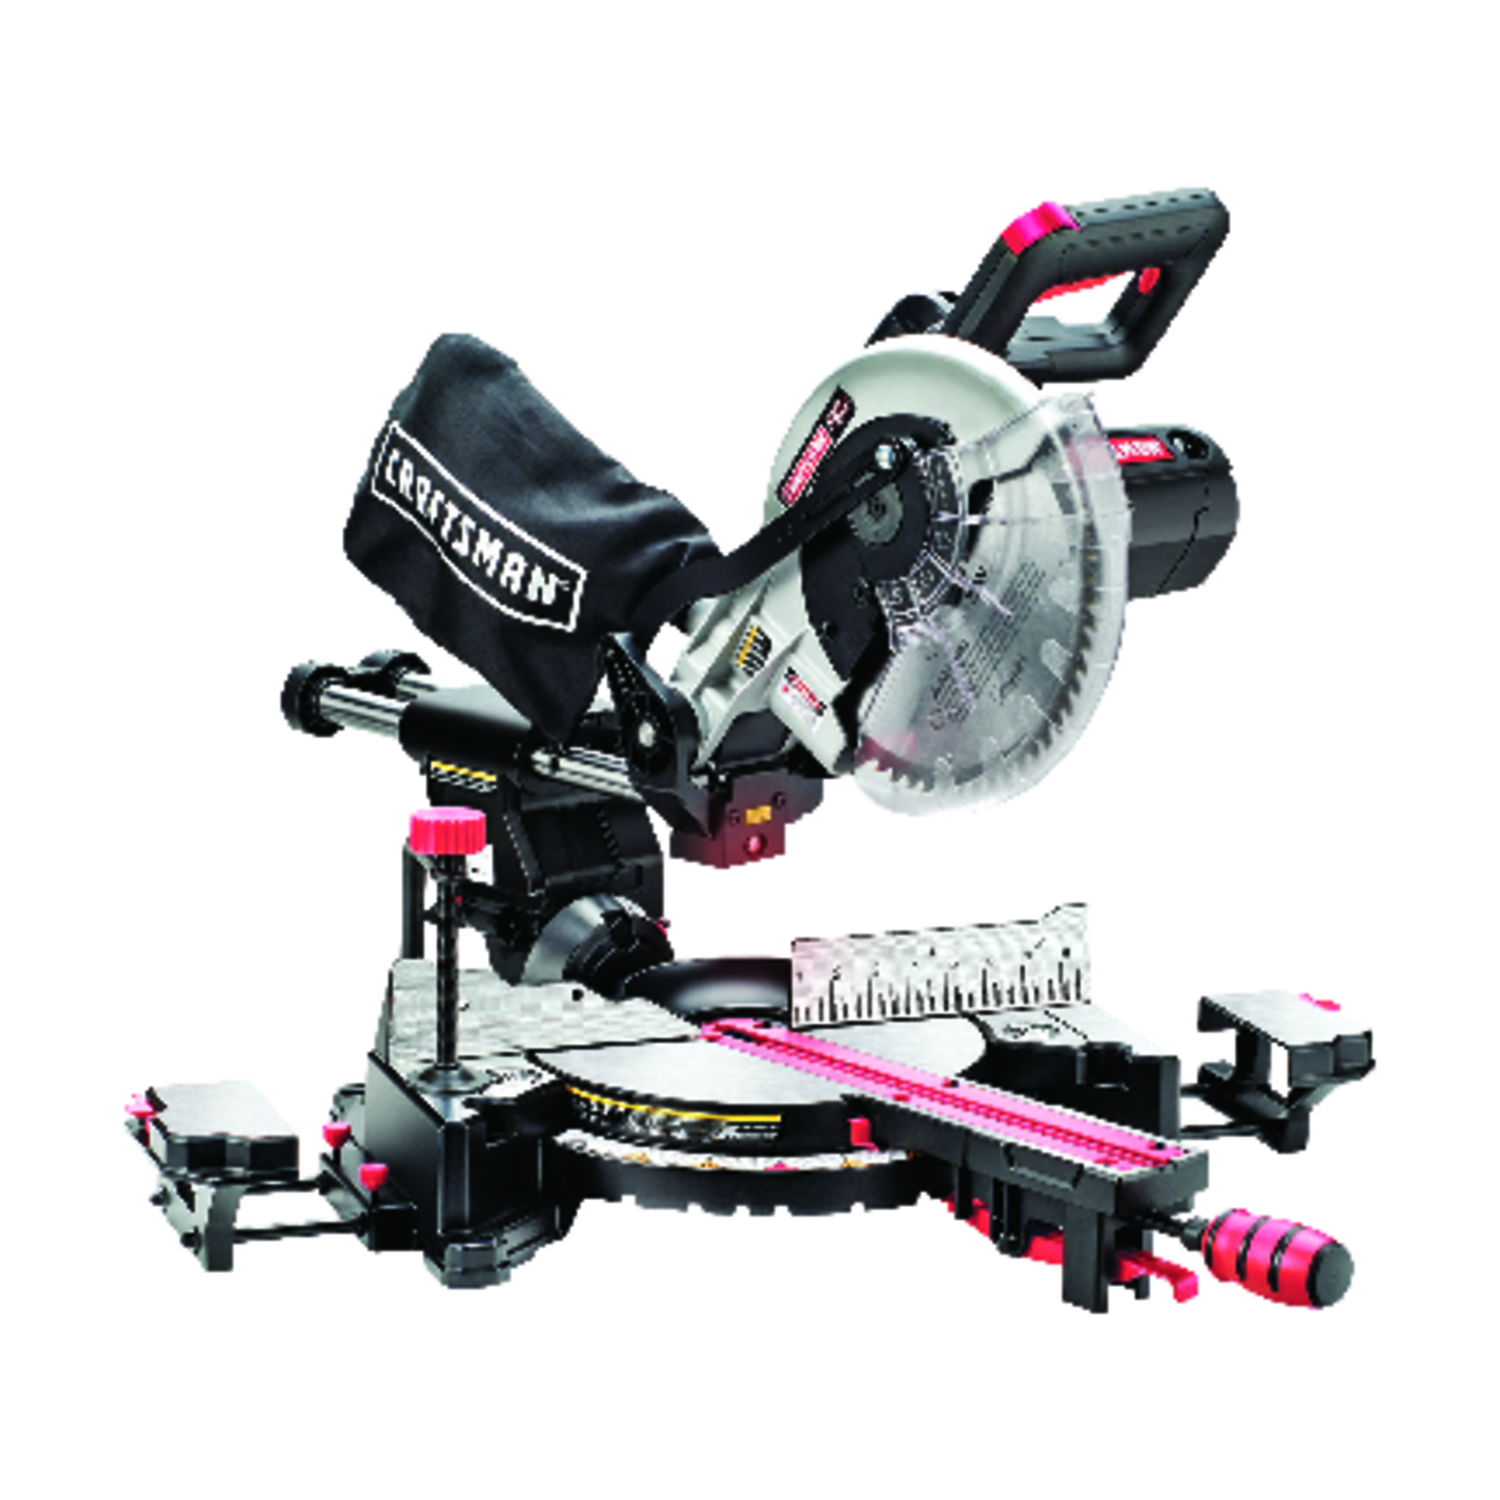 hight resolution of craftsman 10 in corded compound miter saw with laser kit 120 volt craftsman circular saw craftsman compound miter saw wiring diagram